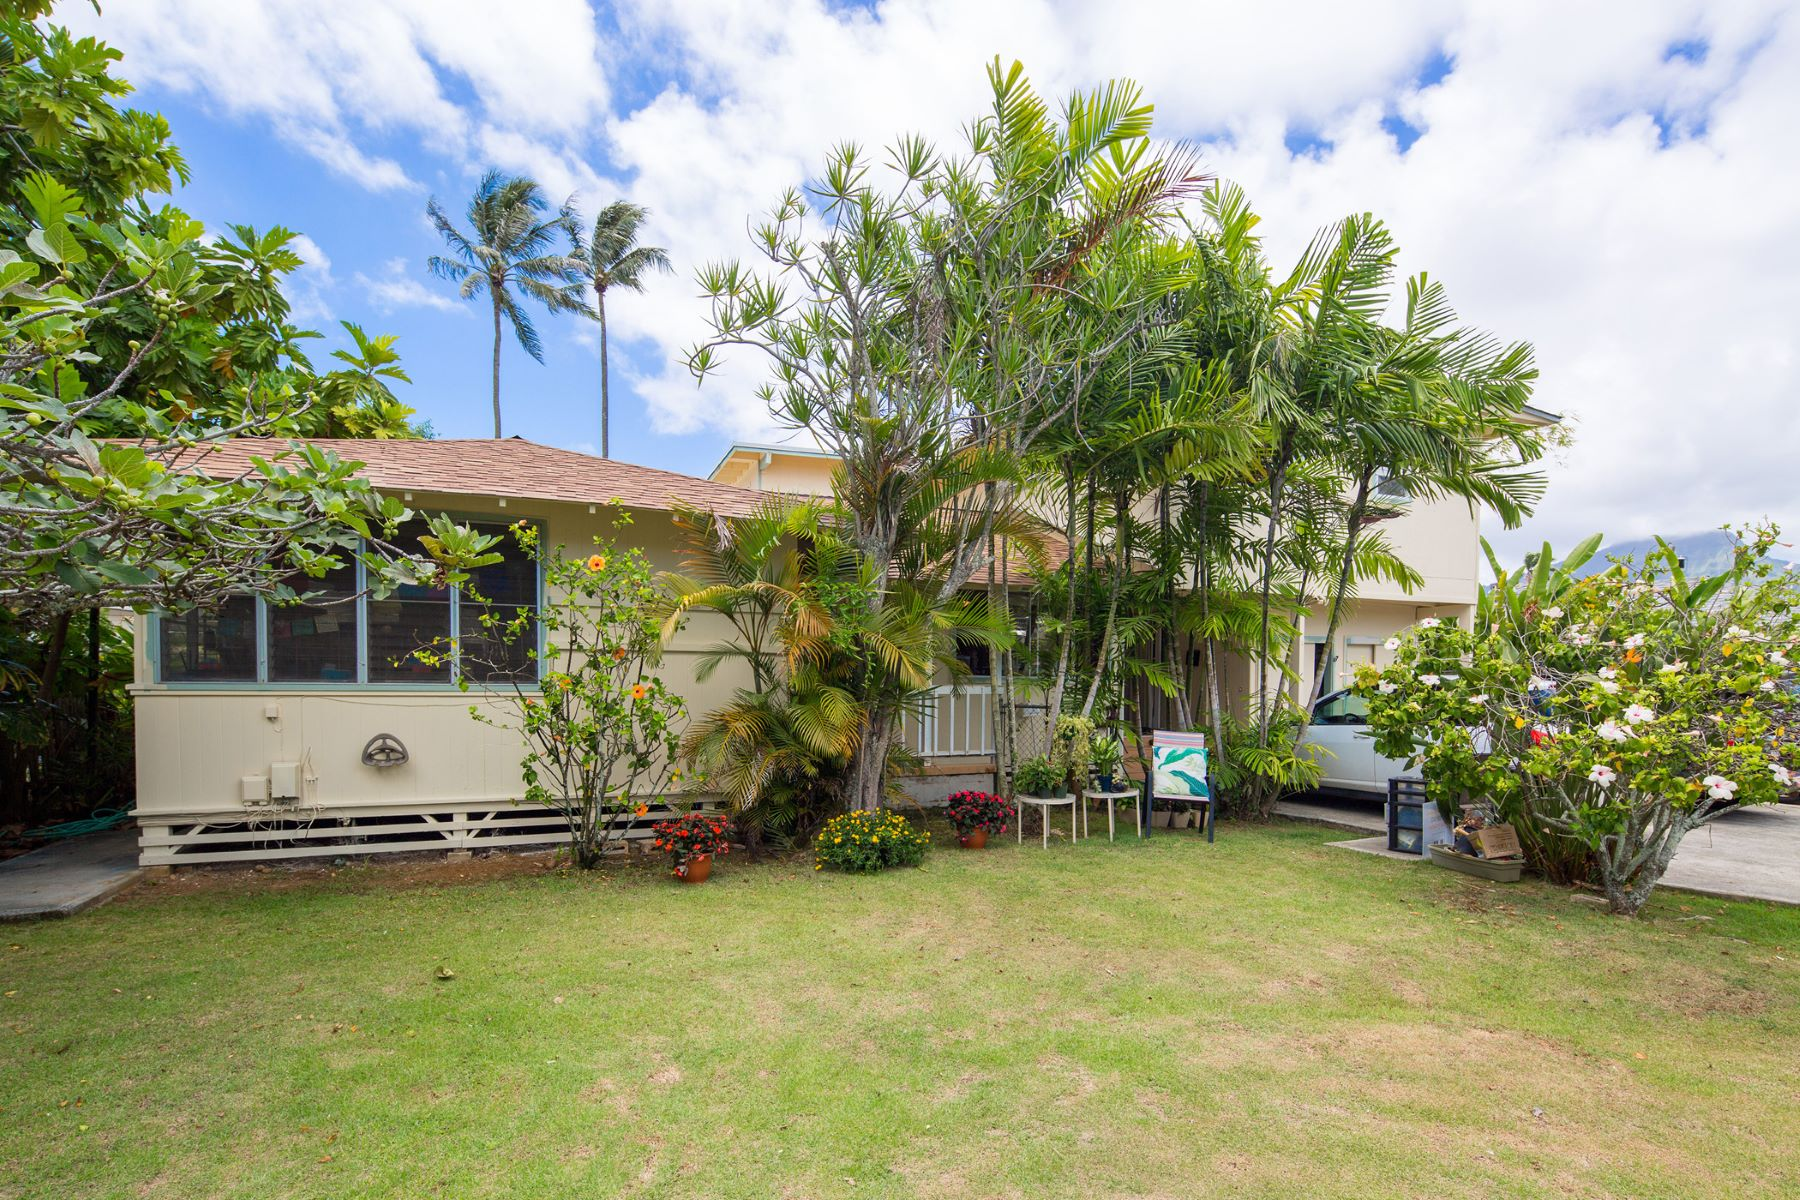 Casa Unifamiliar por un Venta en By The Shinning Sea Hawaii Home 45-125 Ka Hanahou Circle Kaneohe, Hawaii 96744 Estados Unidos